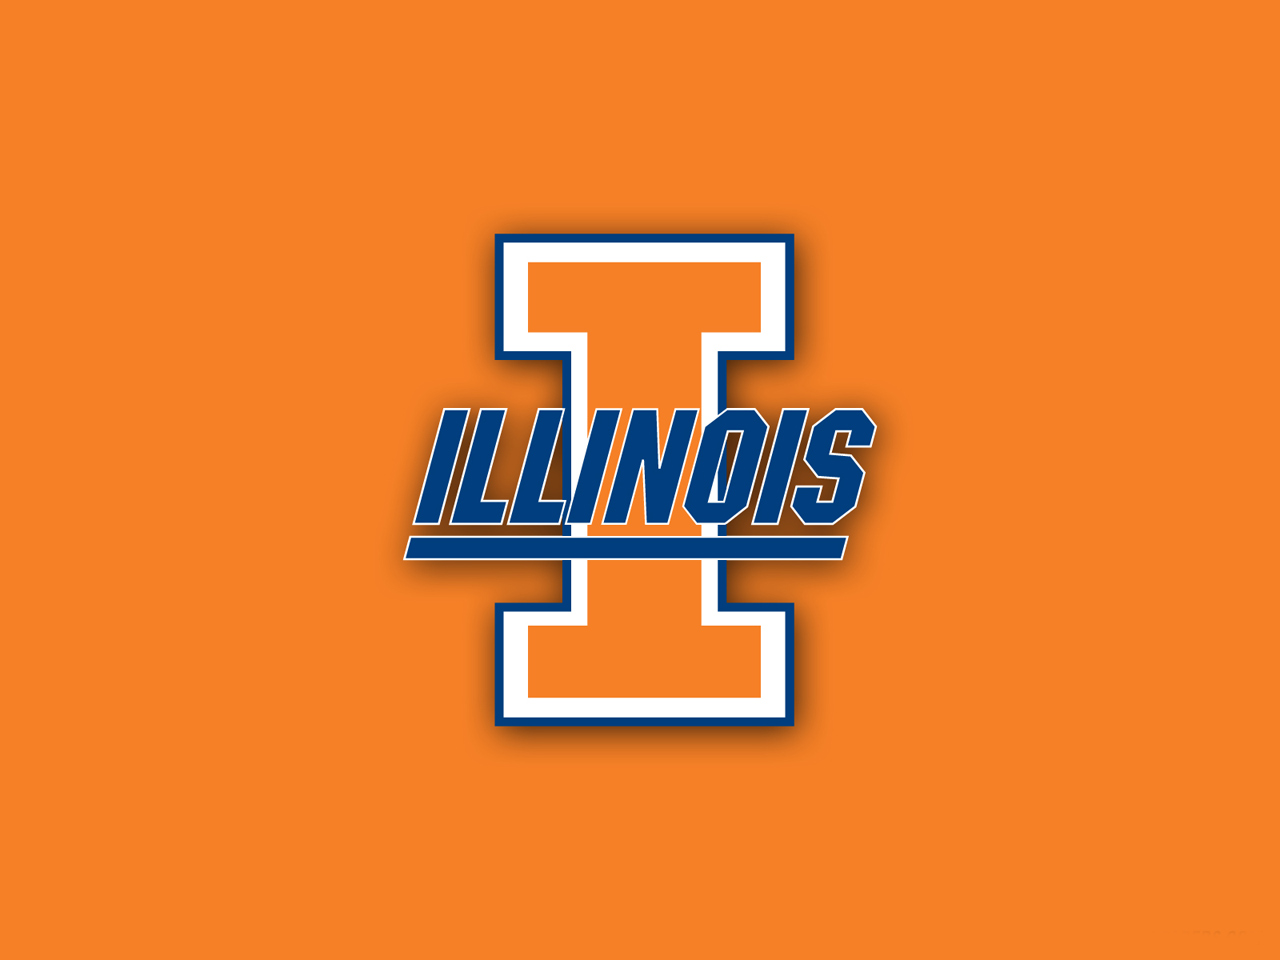 University Of Illinois Desktop Wallpaper computer desktop wallpapers 1280x960